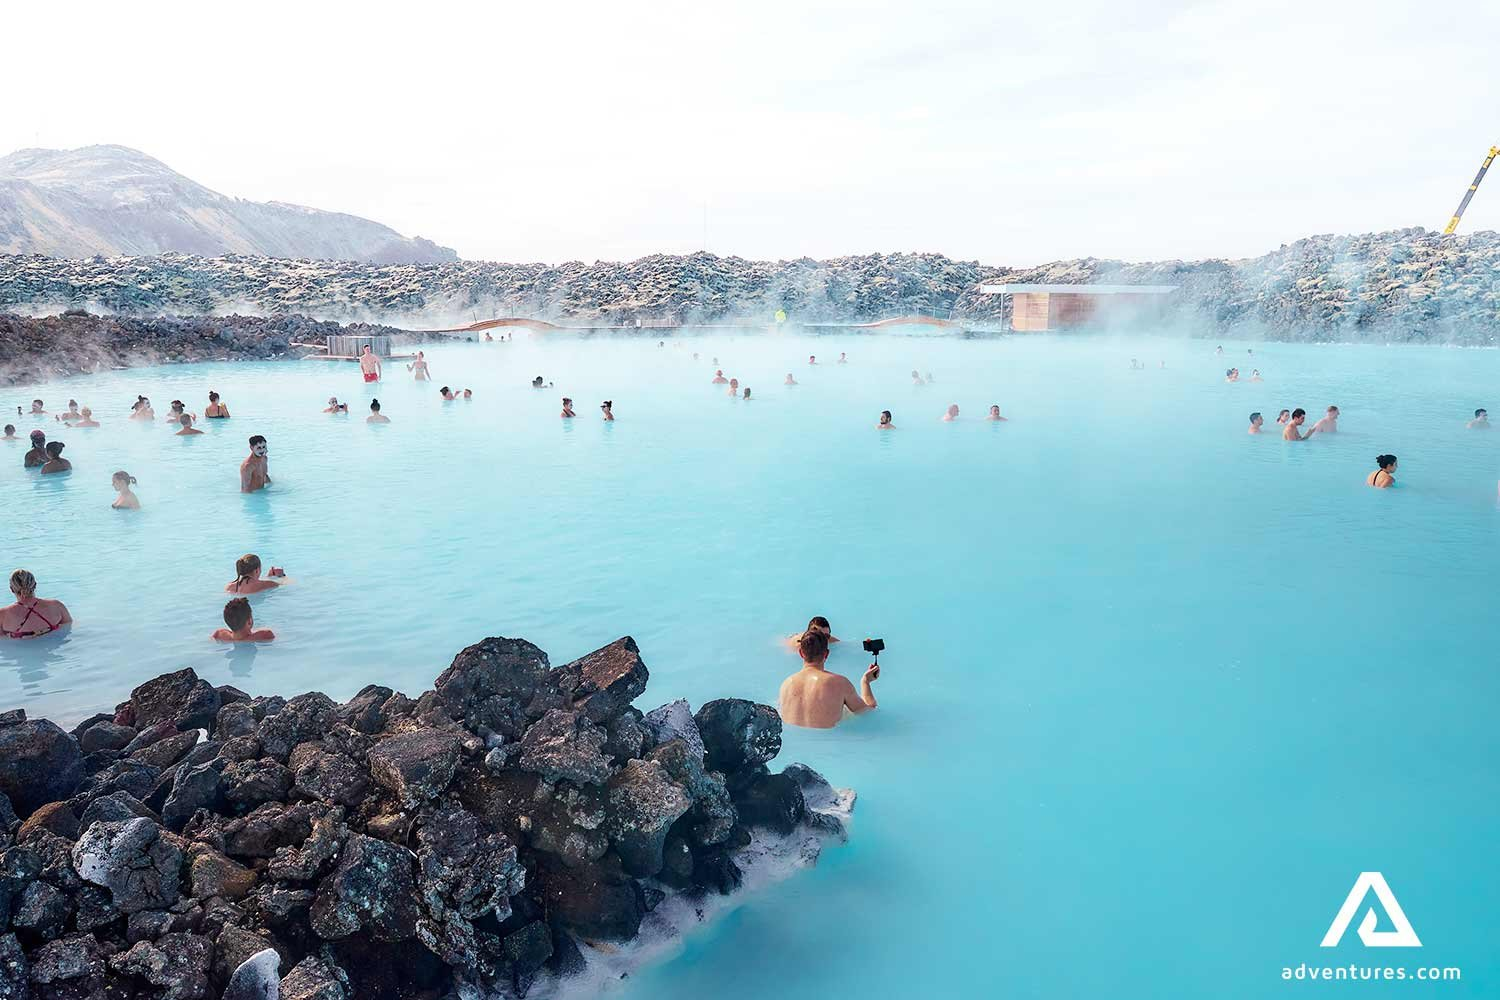 Sunset At Blue Lagoon Geothermal Bath during winter  In Iceland